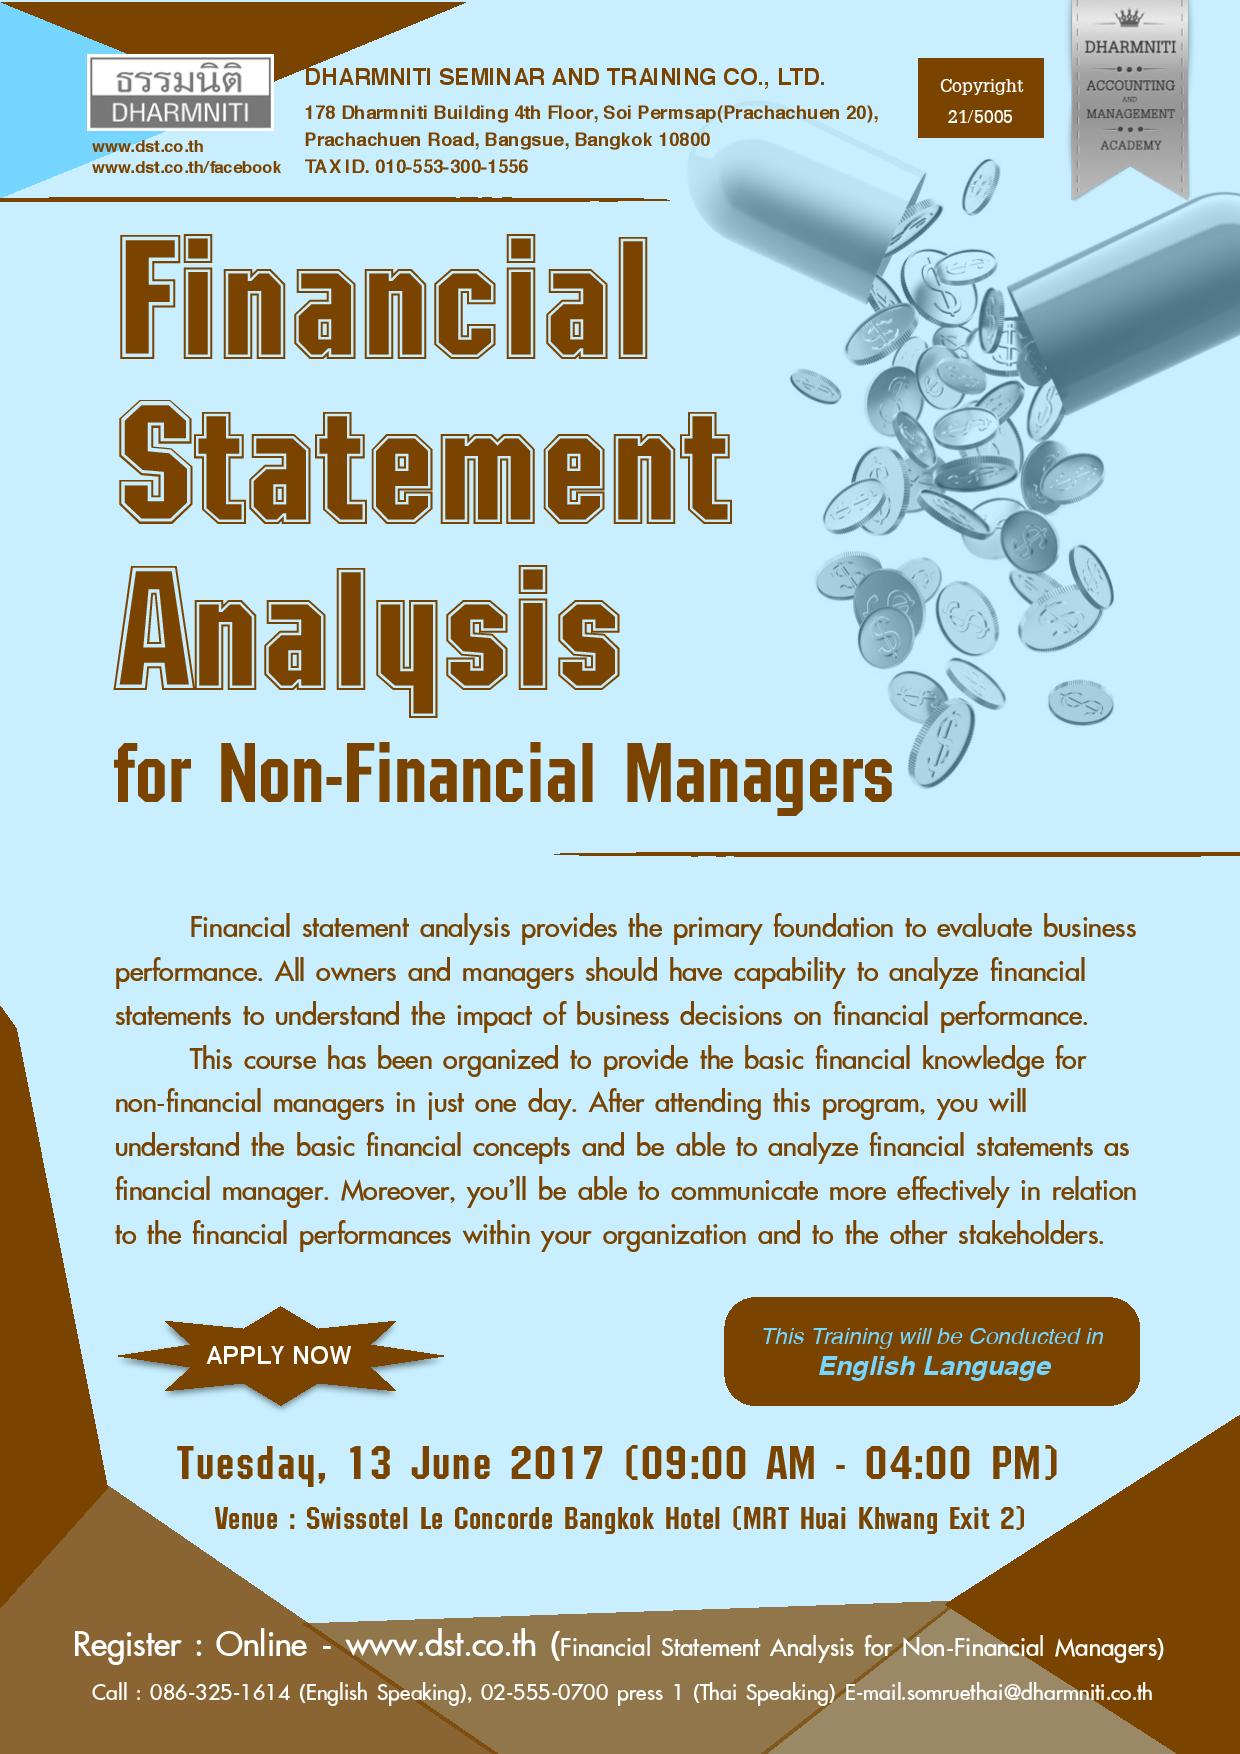 Financial Statement Analysis for Non-Financial Managers (English Language)